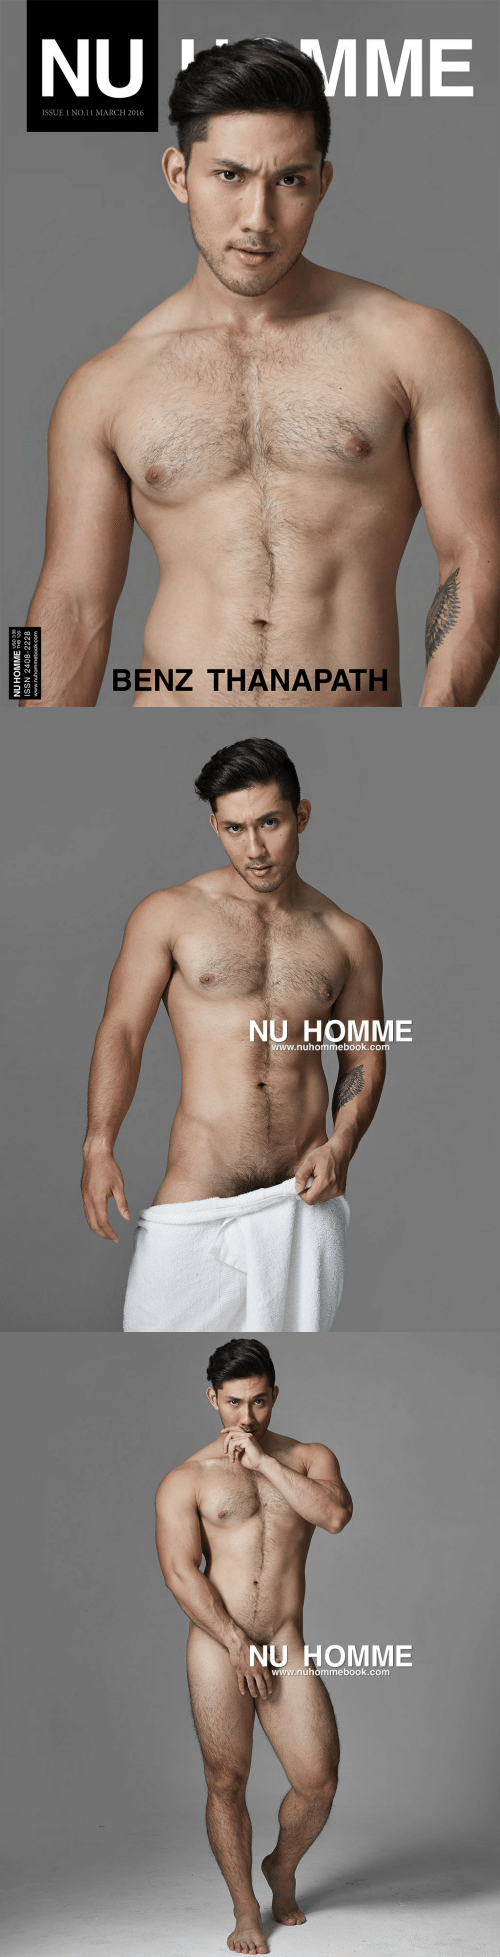 issue: MME  NU  ISSUE 1 NO.11 MARCH 2016  BENZ THANAPATH  NU HOMME HB 120  ISSN 2408-2228  www.nuhommebook.com   NU HOMME  www.nuhommebook.com   NU HOMME  www.nuhommebook.com